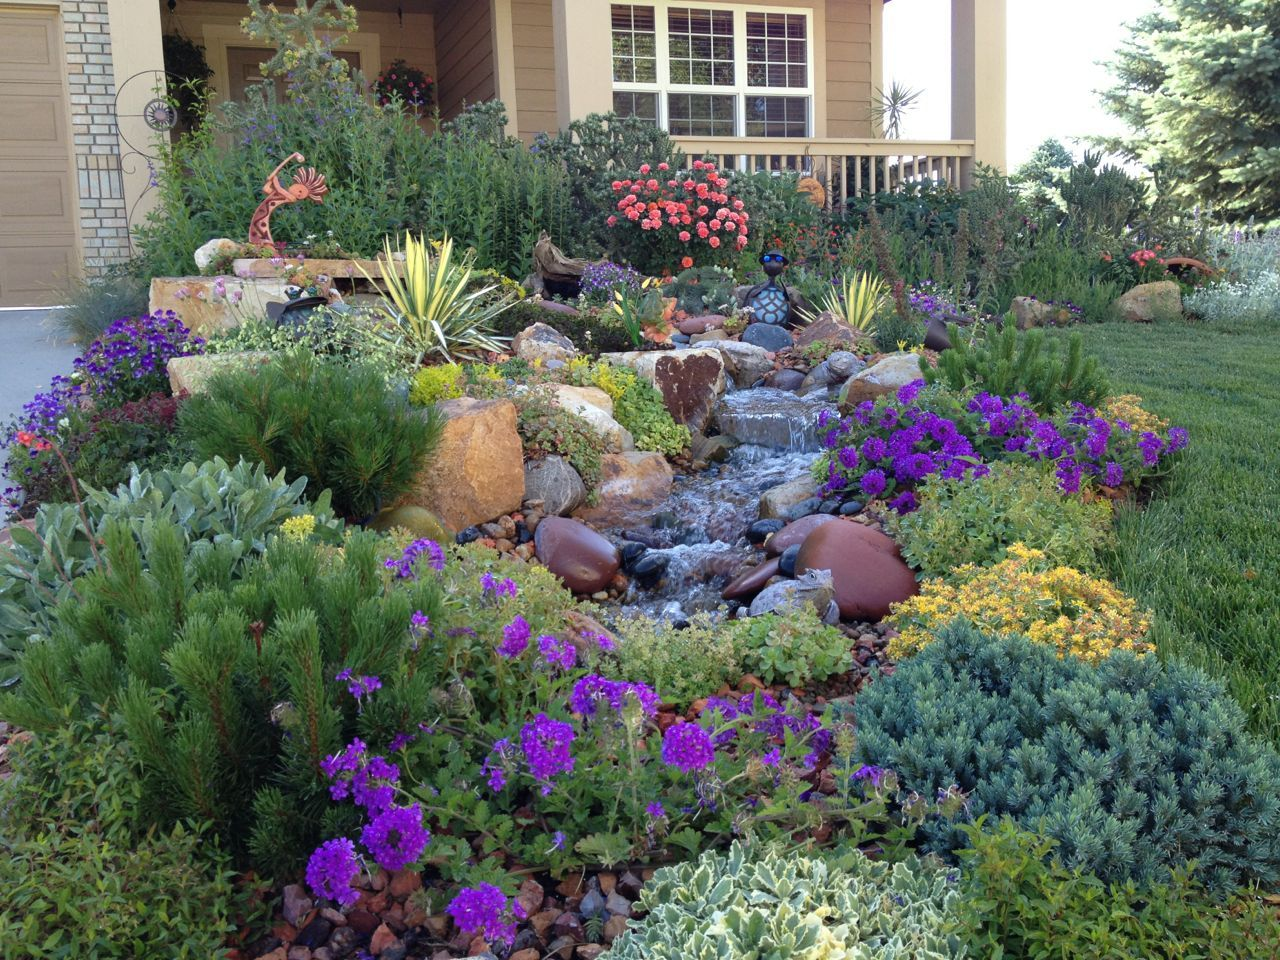 Rock Garden: An Exuberant Border Plant Selection Attracts Songbirds And  Butterflies Galore. Photo Courtesy Of Tanya Fisher, Colorado Vista Landscape  Design.